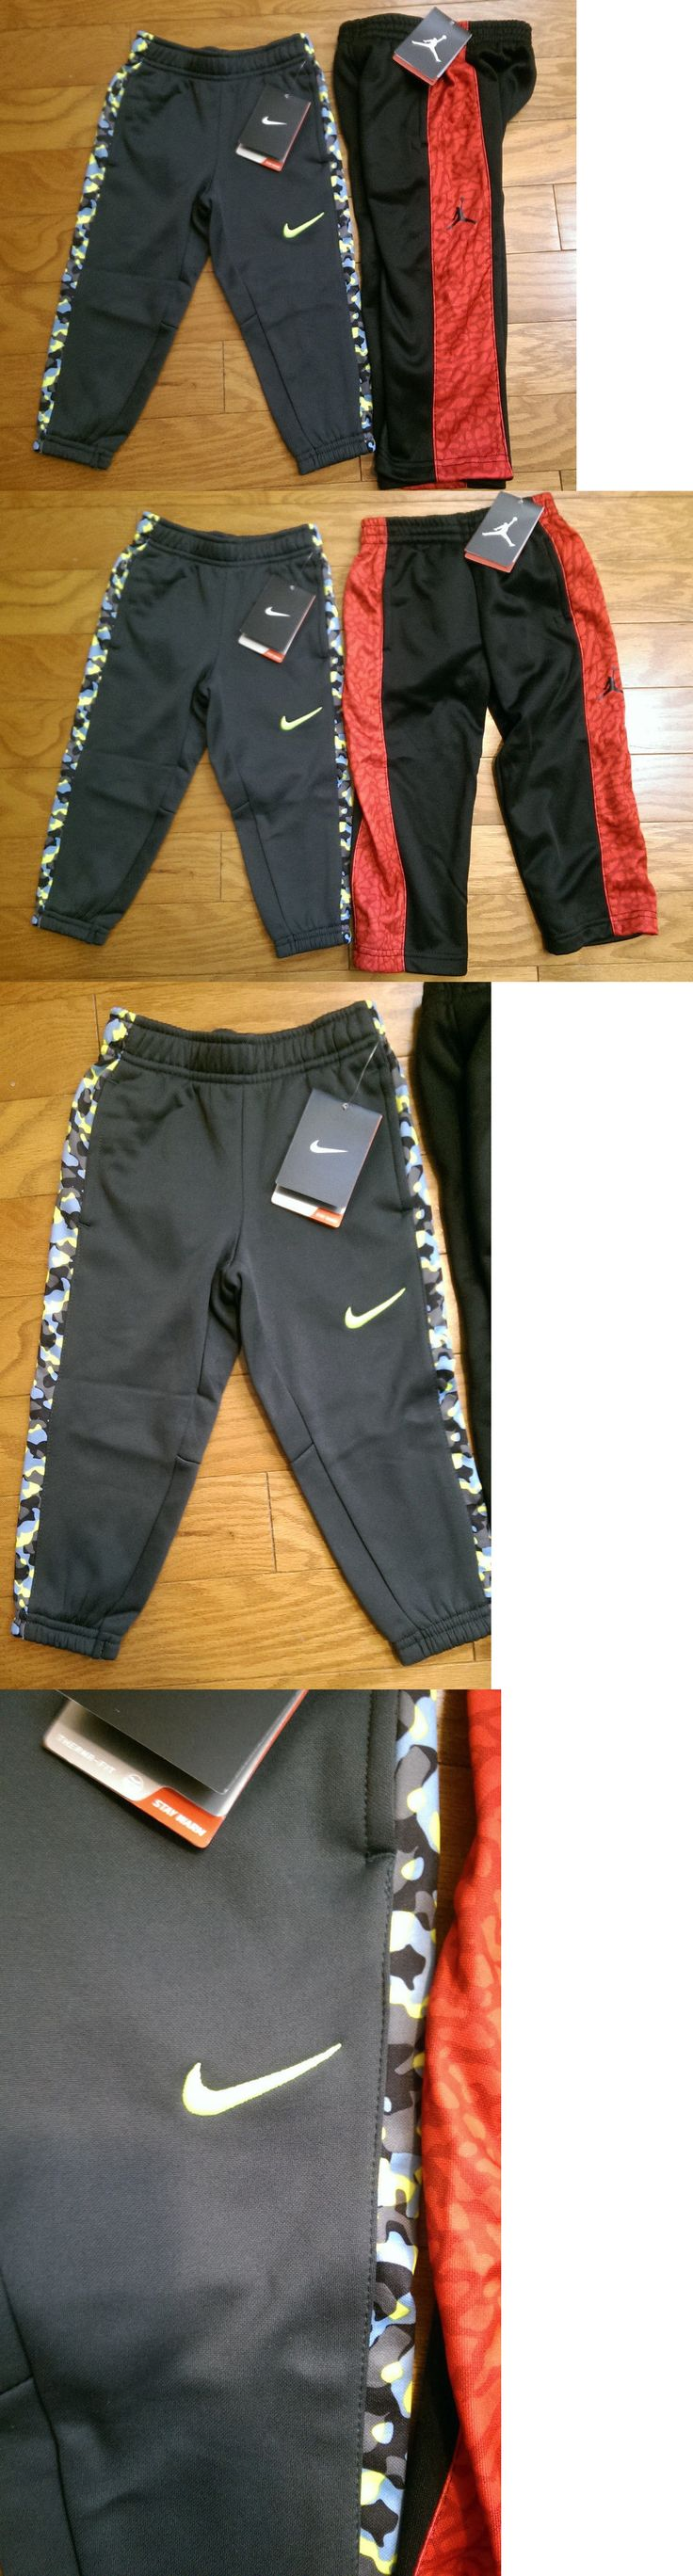 Bottoms 57793: Lot Of 2 - Boys Nike And Jordan Sweat Pants - Multi-Color - Size 2T - Nwt - $91 Re -> BUY IT NOW ONLY: $30.93 on eBay!